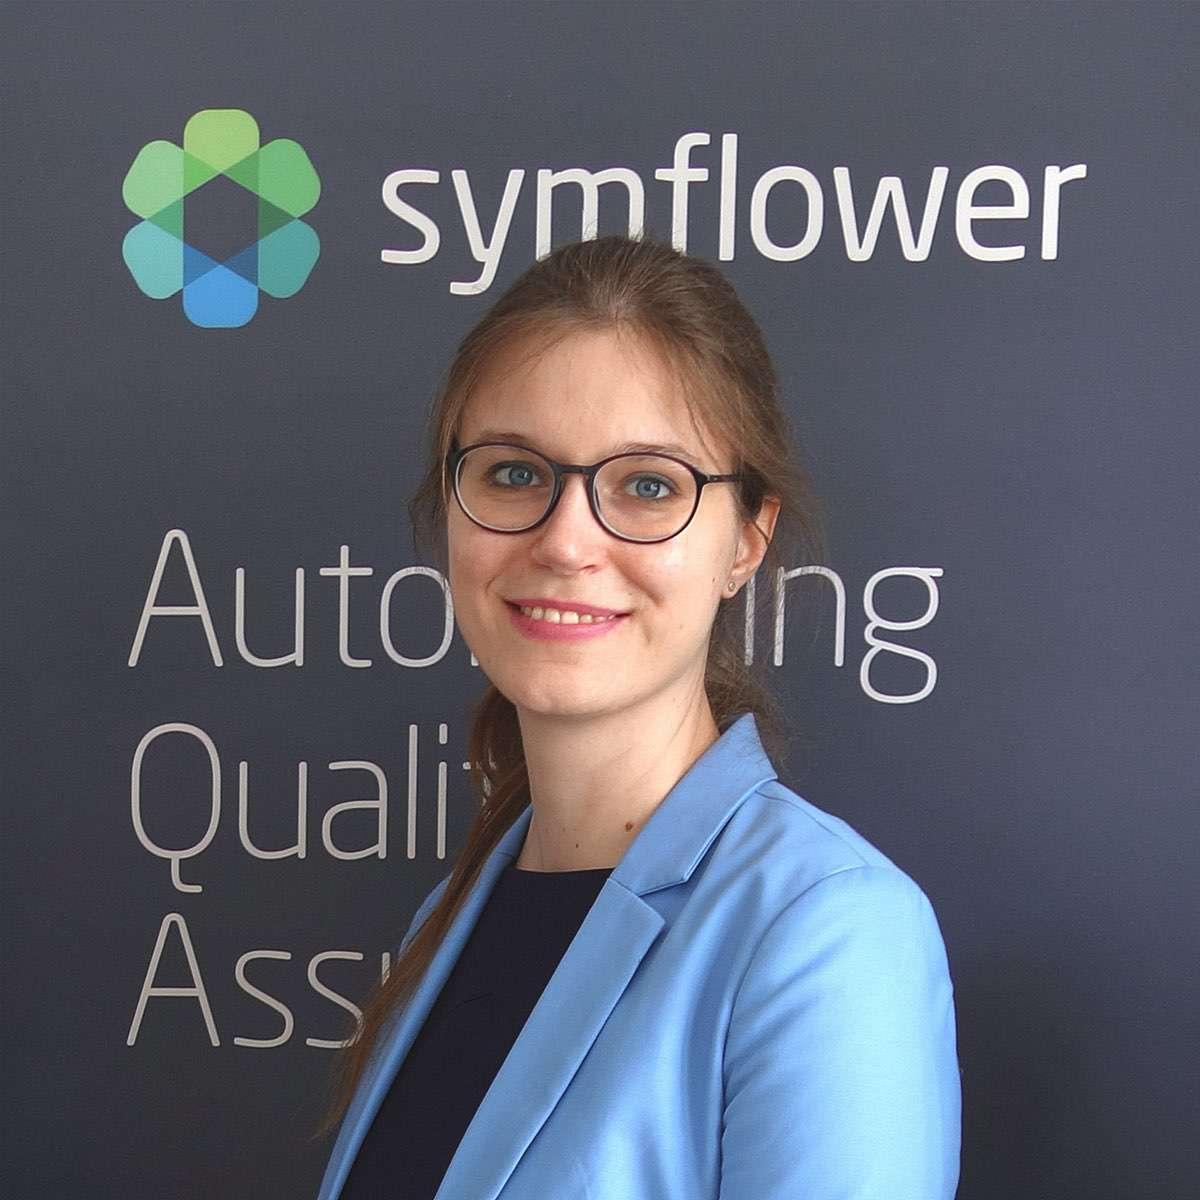 Symflower startet Gratis-Aktion für Software-Testing mittels KI